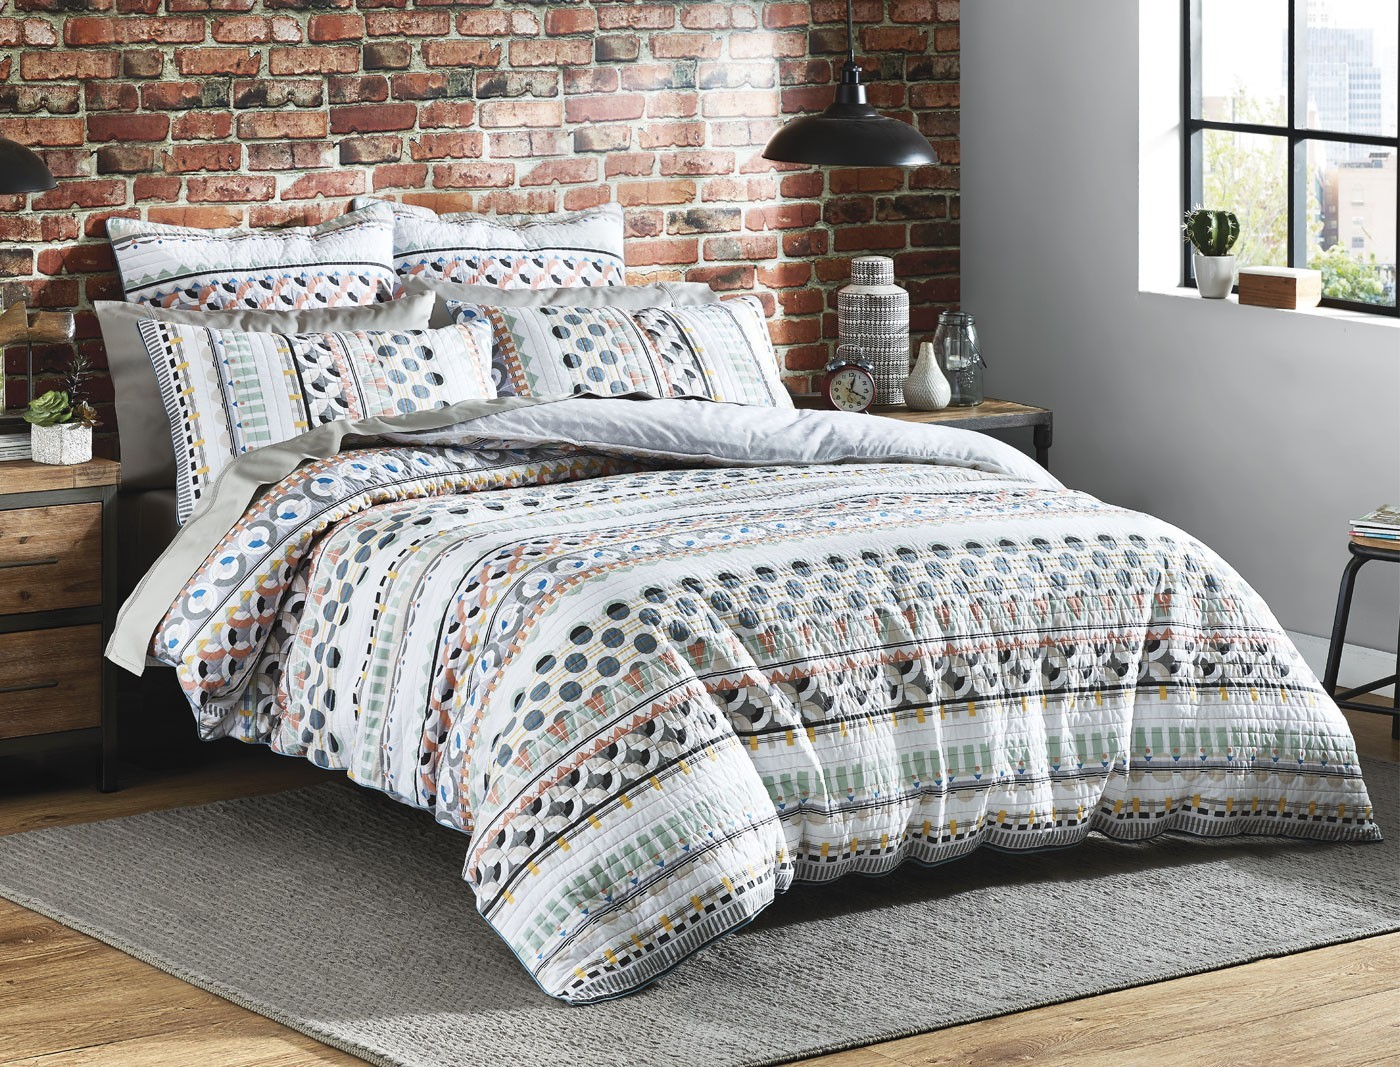 Bargain - $160.97 (was $229.95) - Martel Queen Quilt Cover @ Bed Bath N` Table